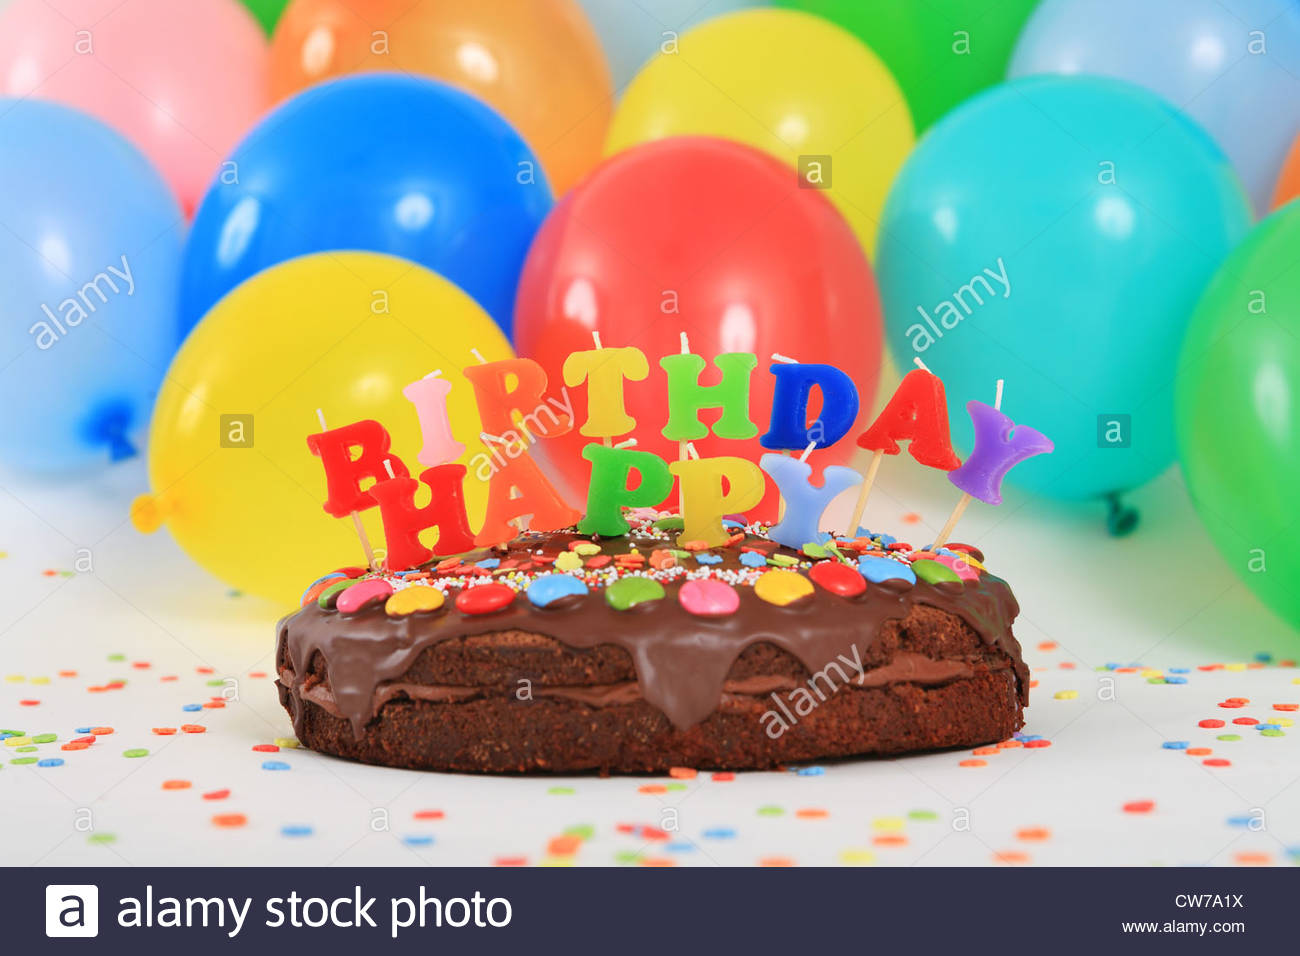 birthday cake balloons picture ; happy-birthday-chocolate-cake-with-candles-and-balloons-CW7A1X